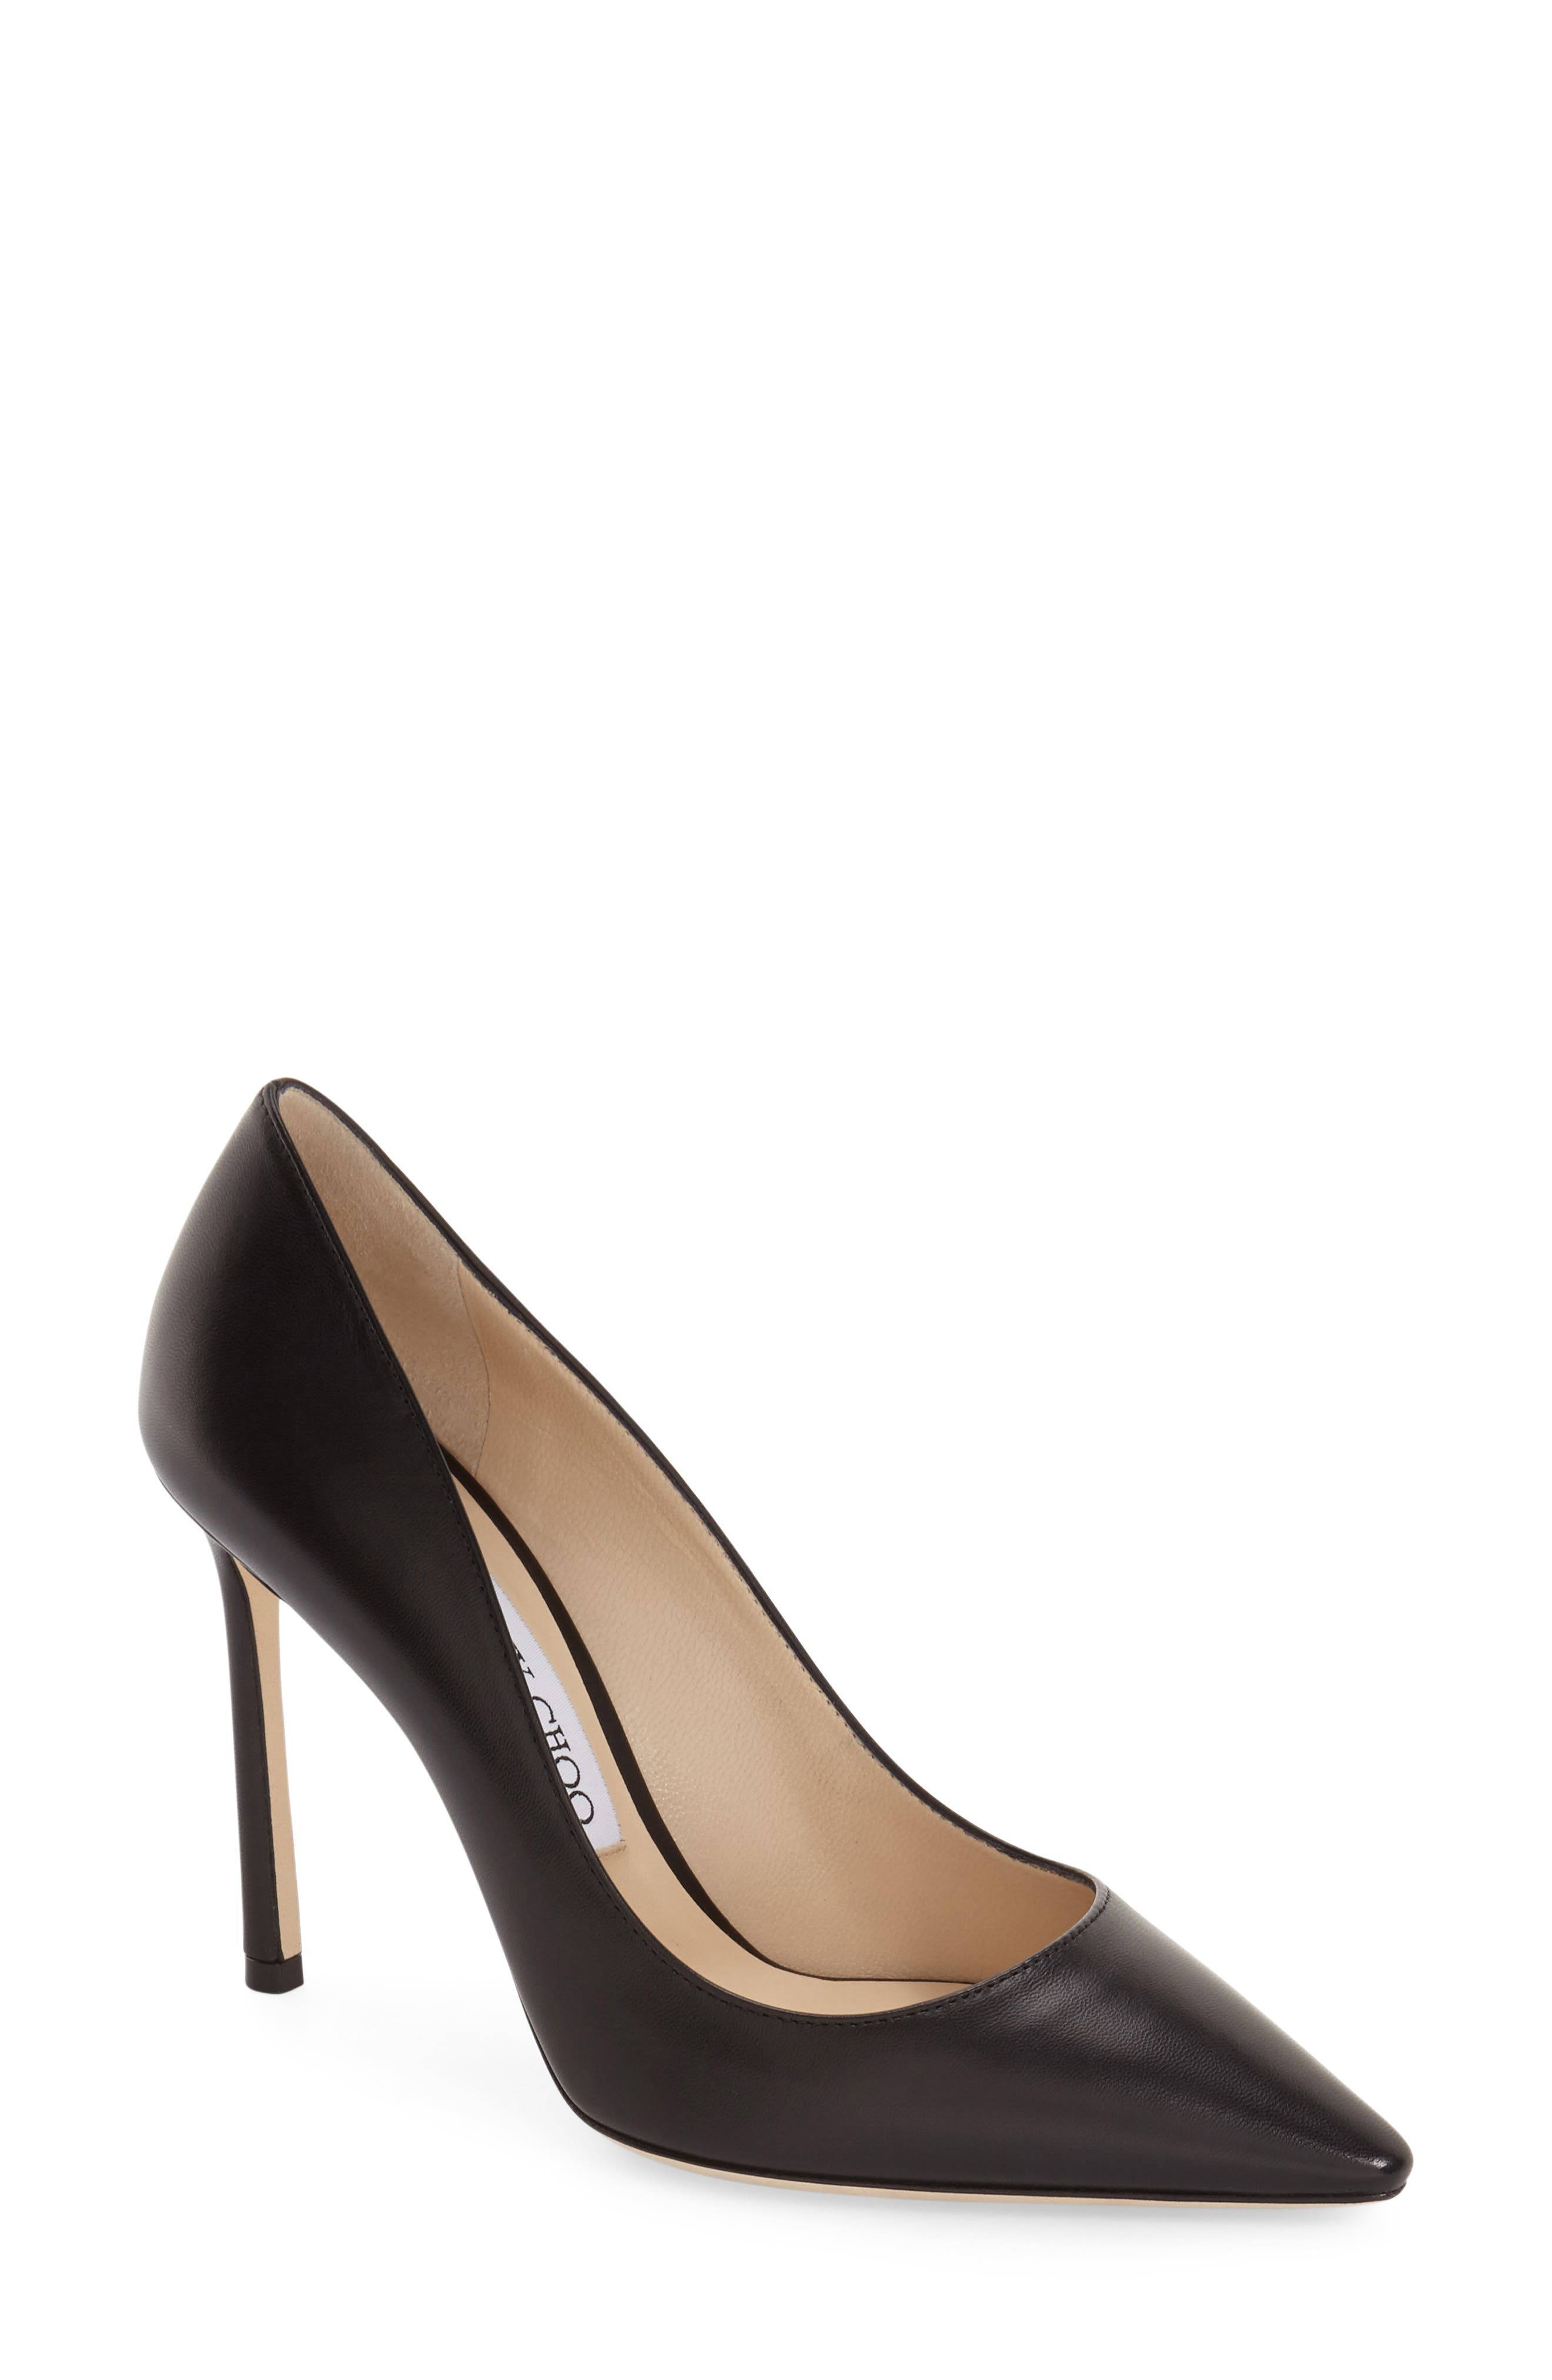 'Romy' Pointy Toe Pump,                             Main thumbnail 1, color,                             BLACK LEATHER